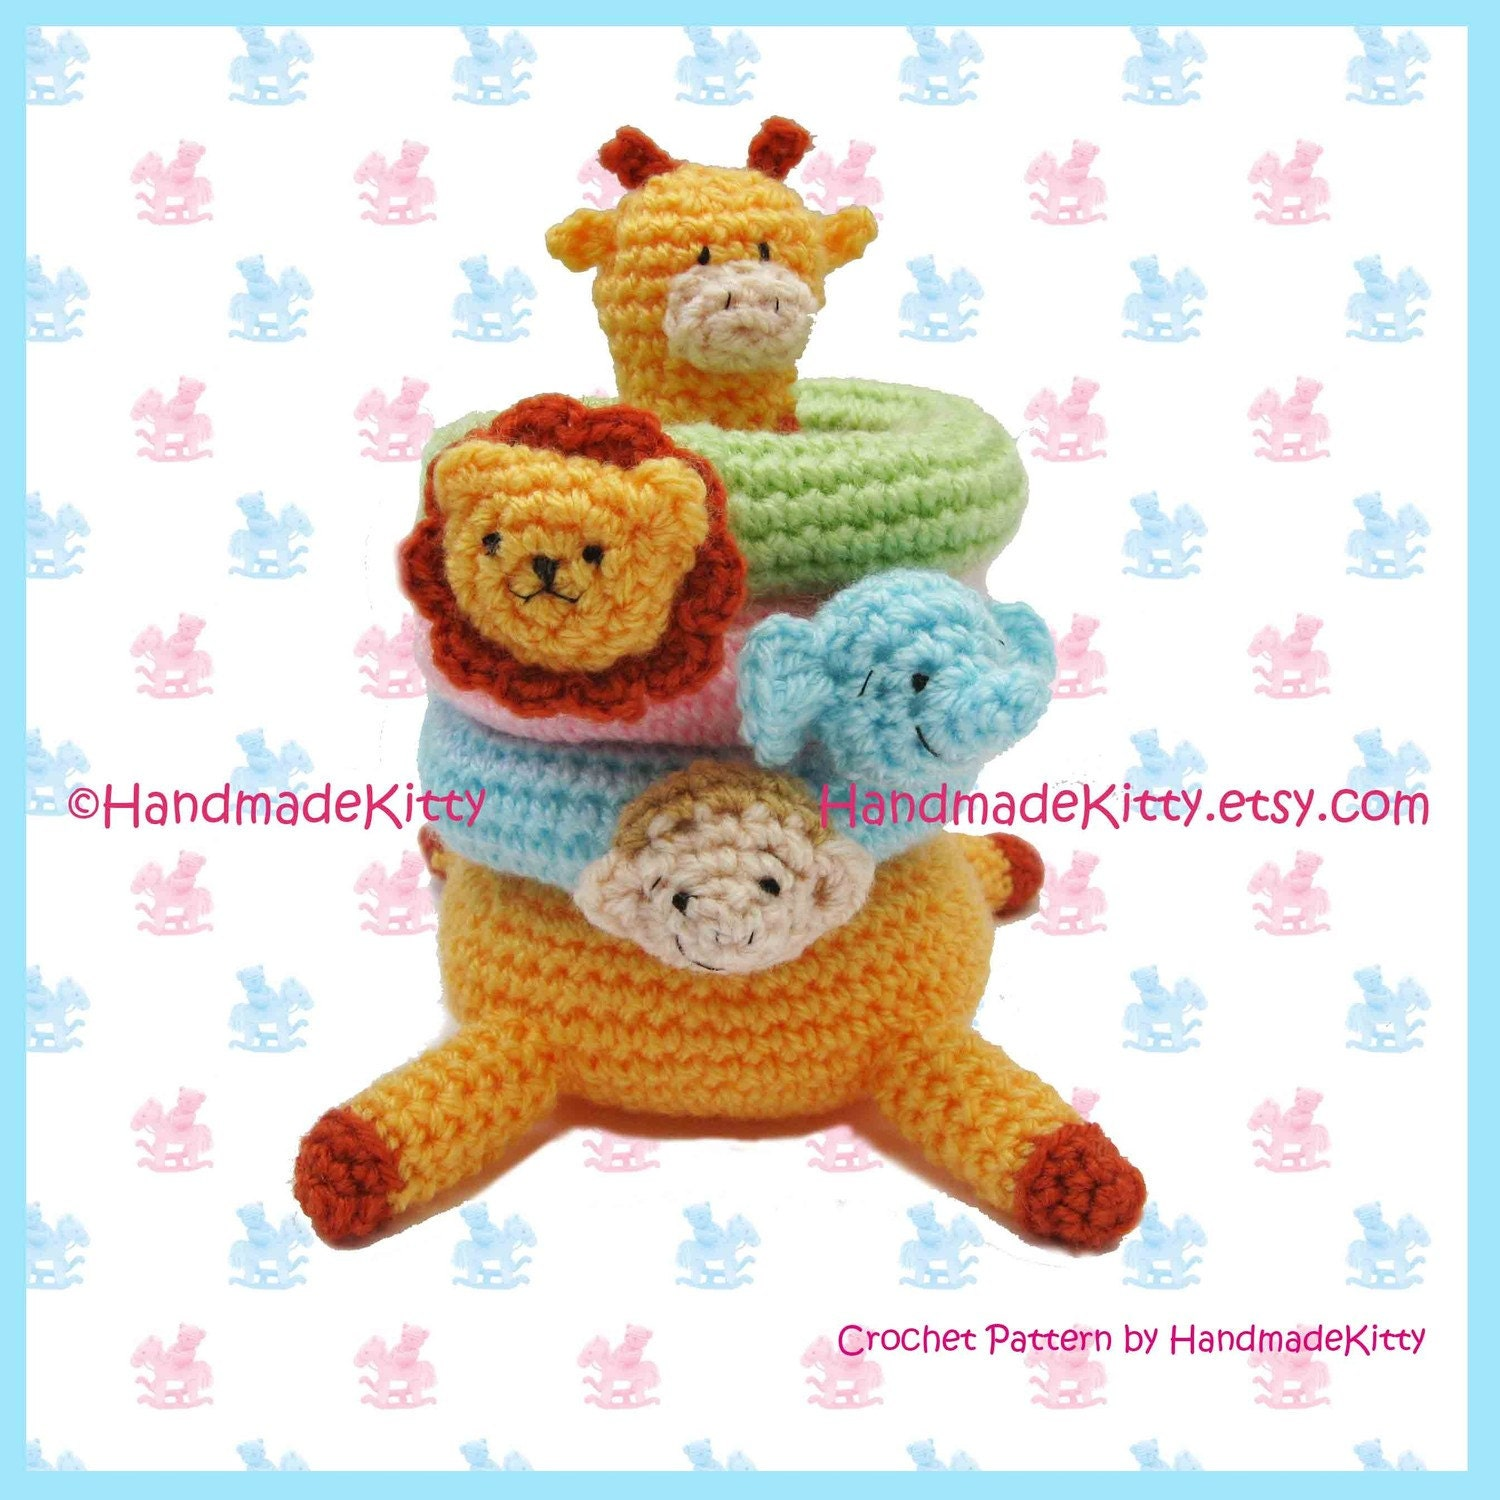 Crochet Patterns Jungle Animals : HandmadeKitty: Kirin Giraffe Jungle Stacker Amigurumi ...